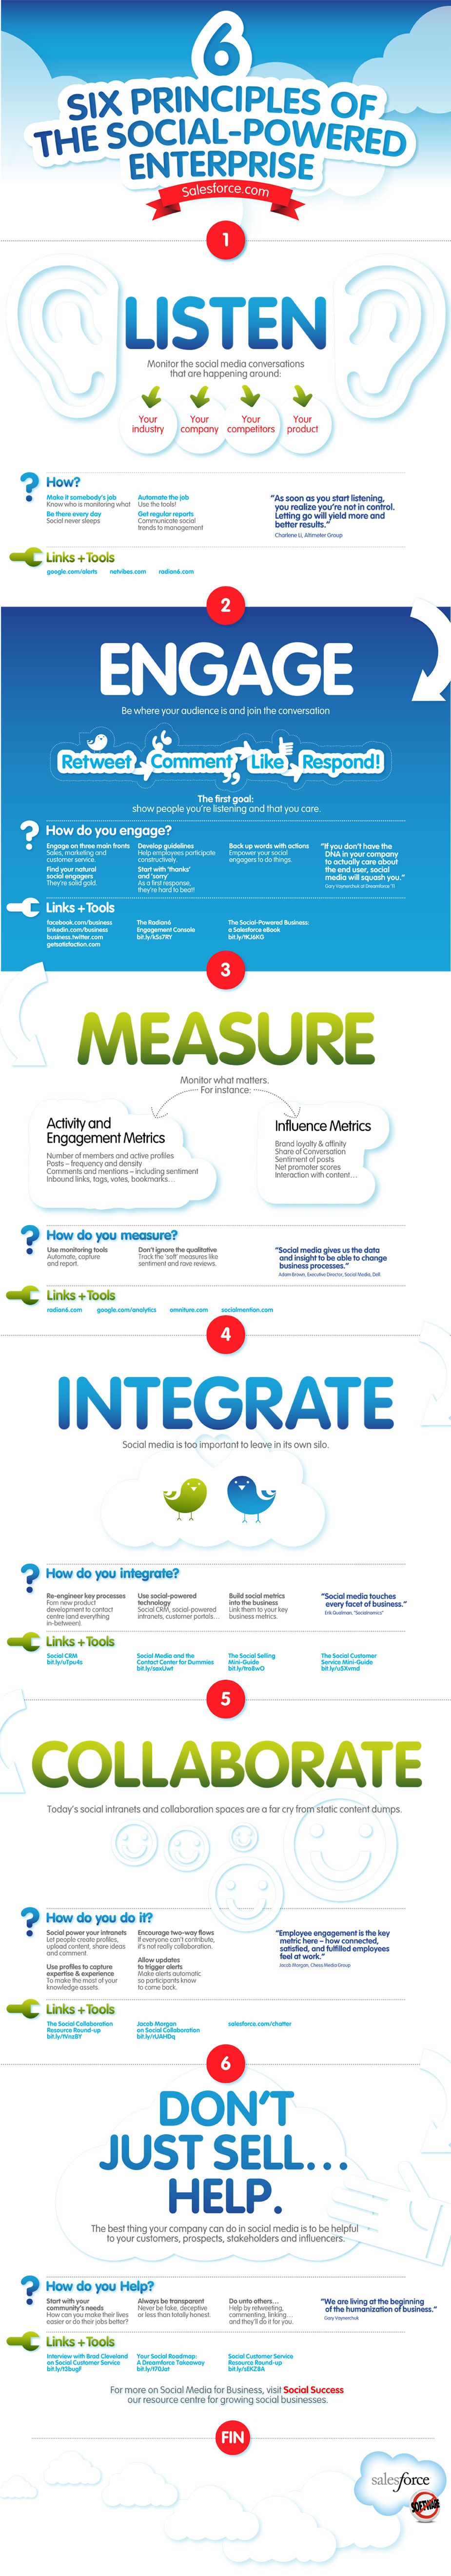 Salesforce_SixPrinciples_Infographic6 Effective Traits Of A Social-Powered Team [Infographic]